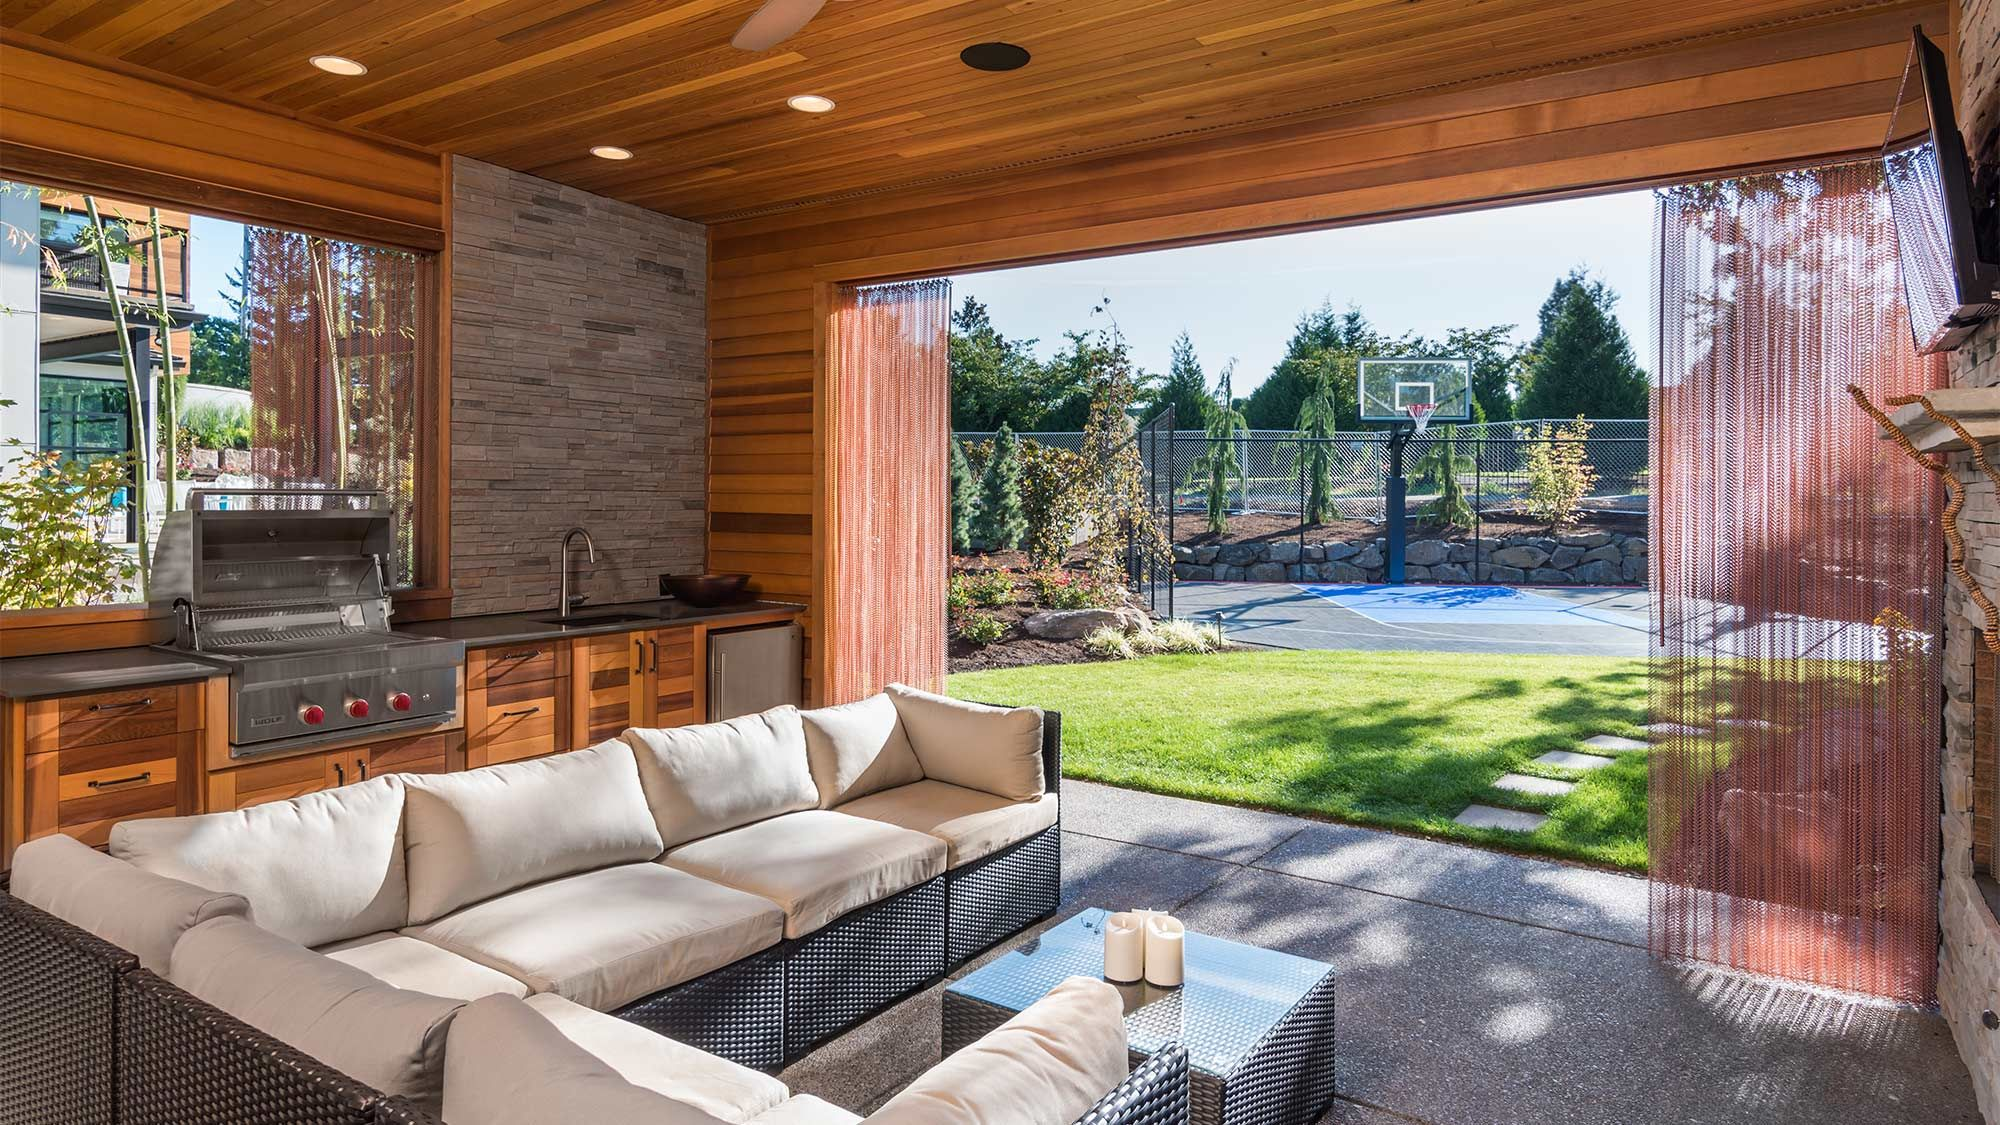 7 backyard landscaping ideas that will entice you to come out of